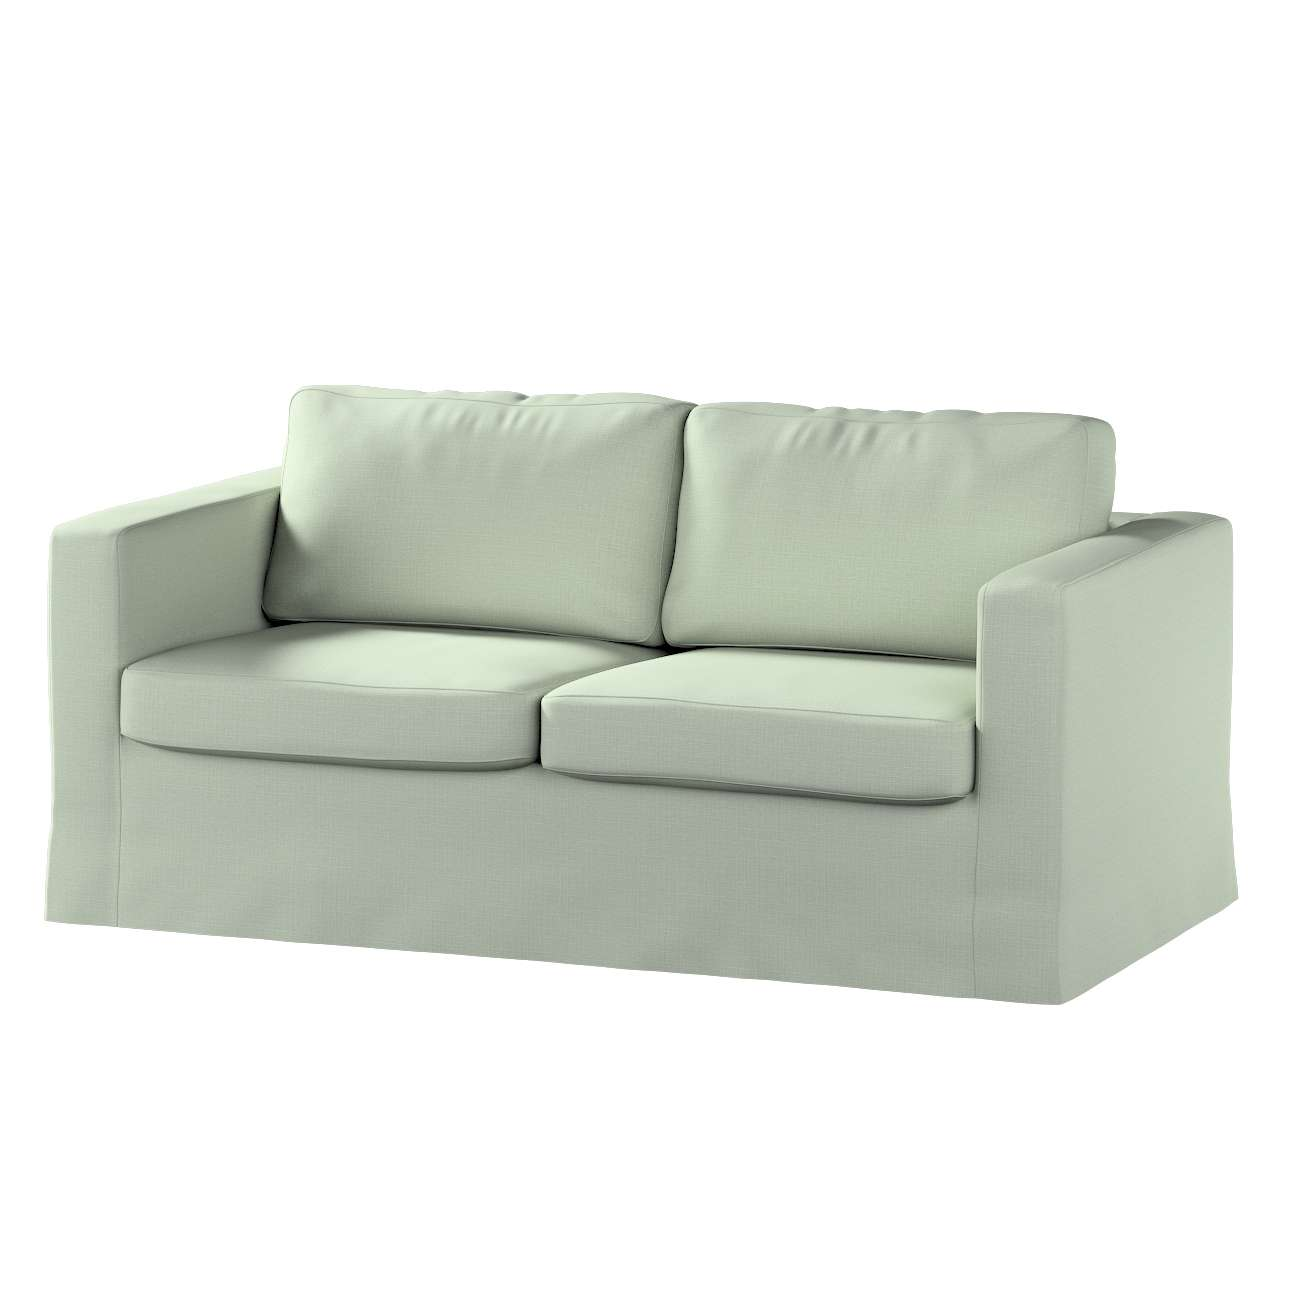 Floor length Karlstad 2-seater sofa cover in collection Granada, fabric: 104-76